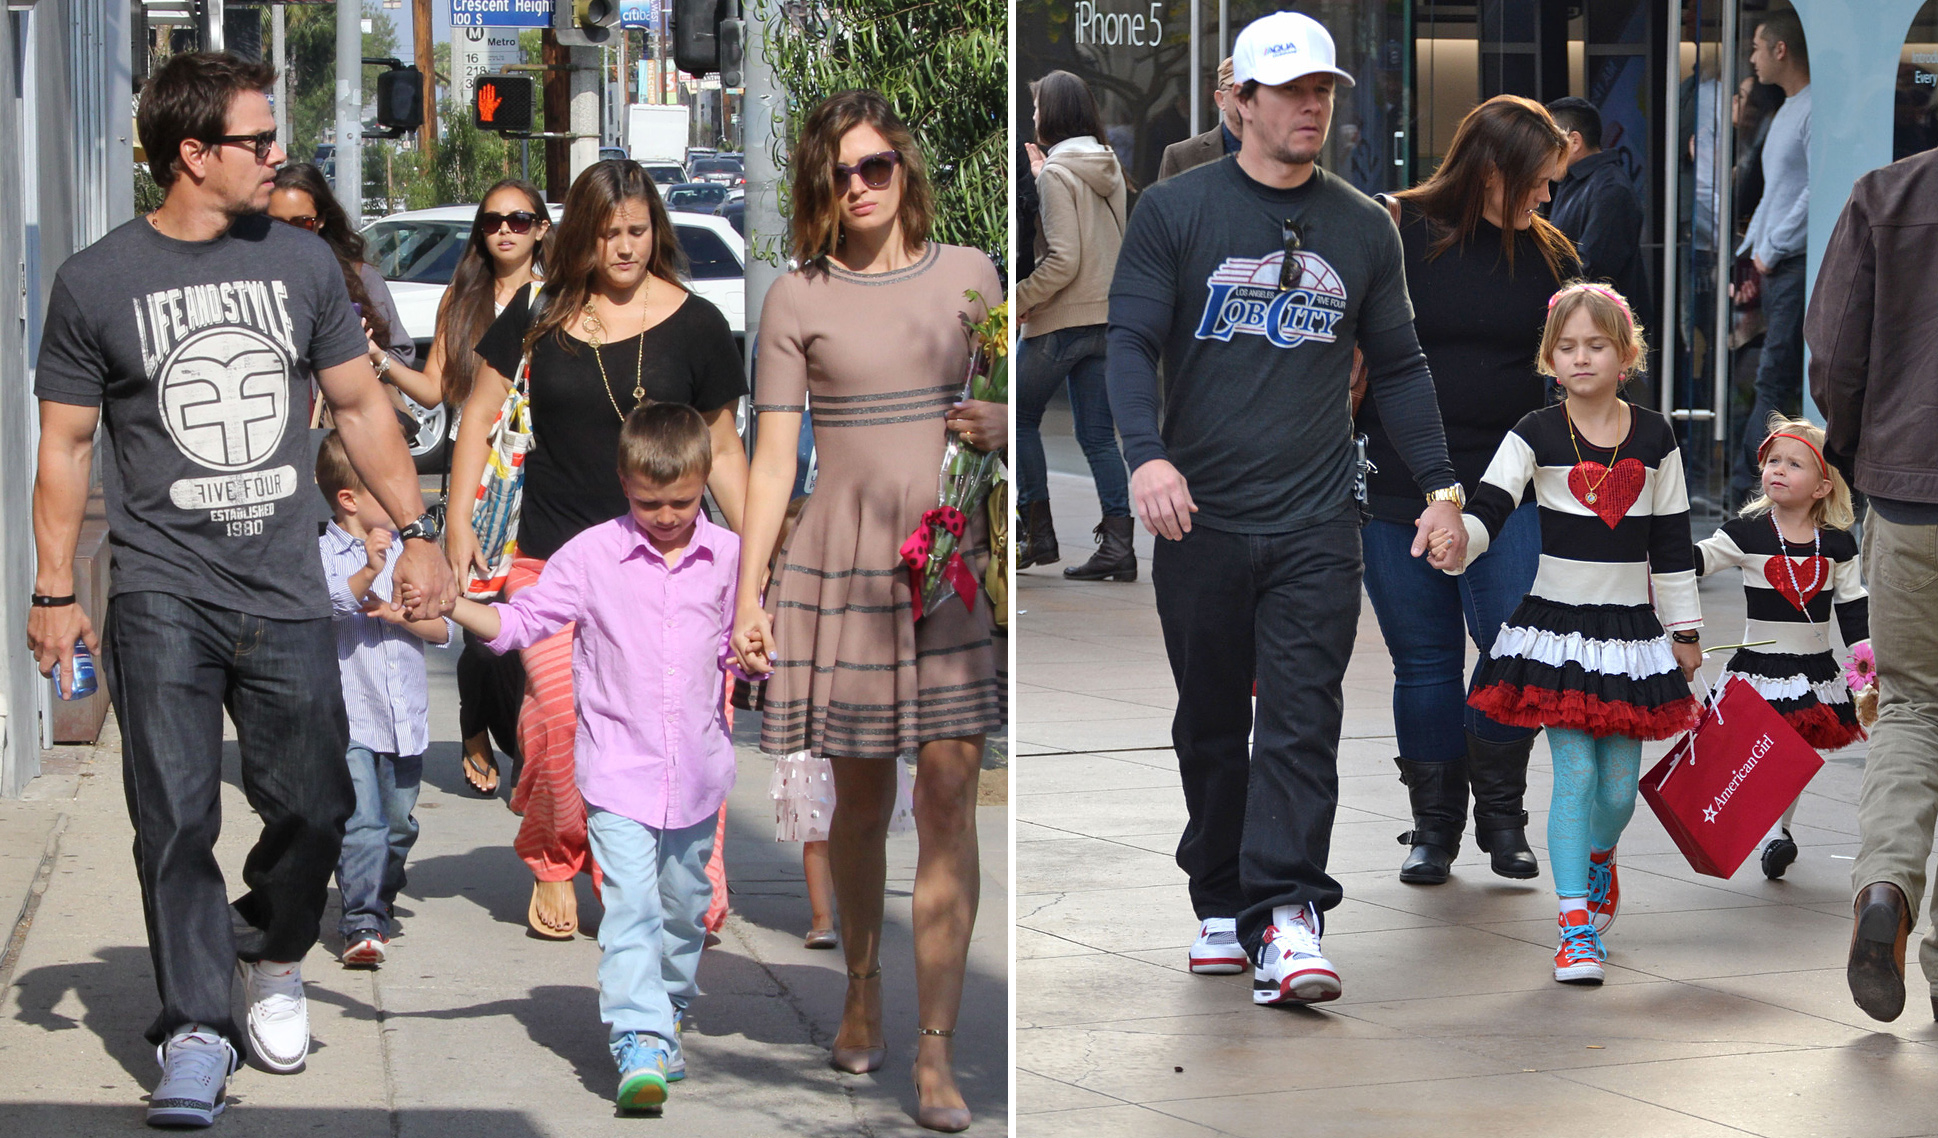 Mark Wahlberg, also known as dad, walks with his little ones. (FameFlynet/PacificCoastNews.com)